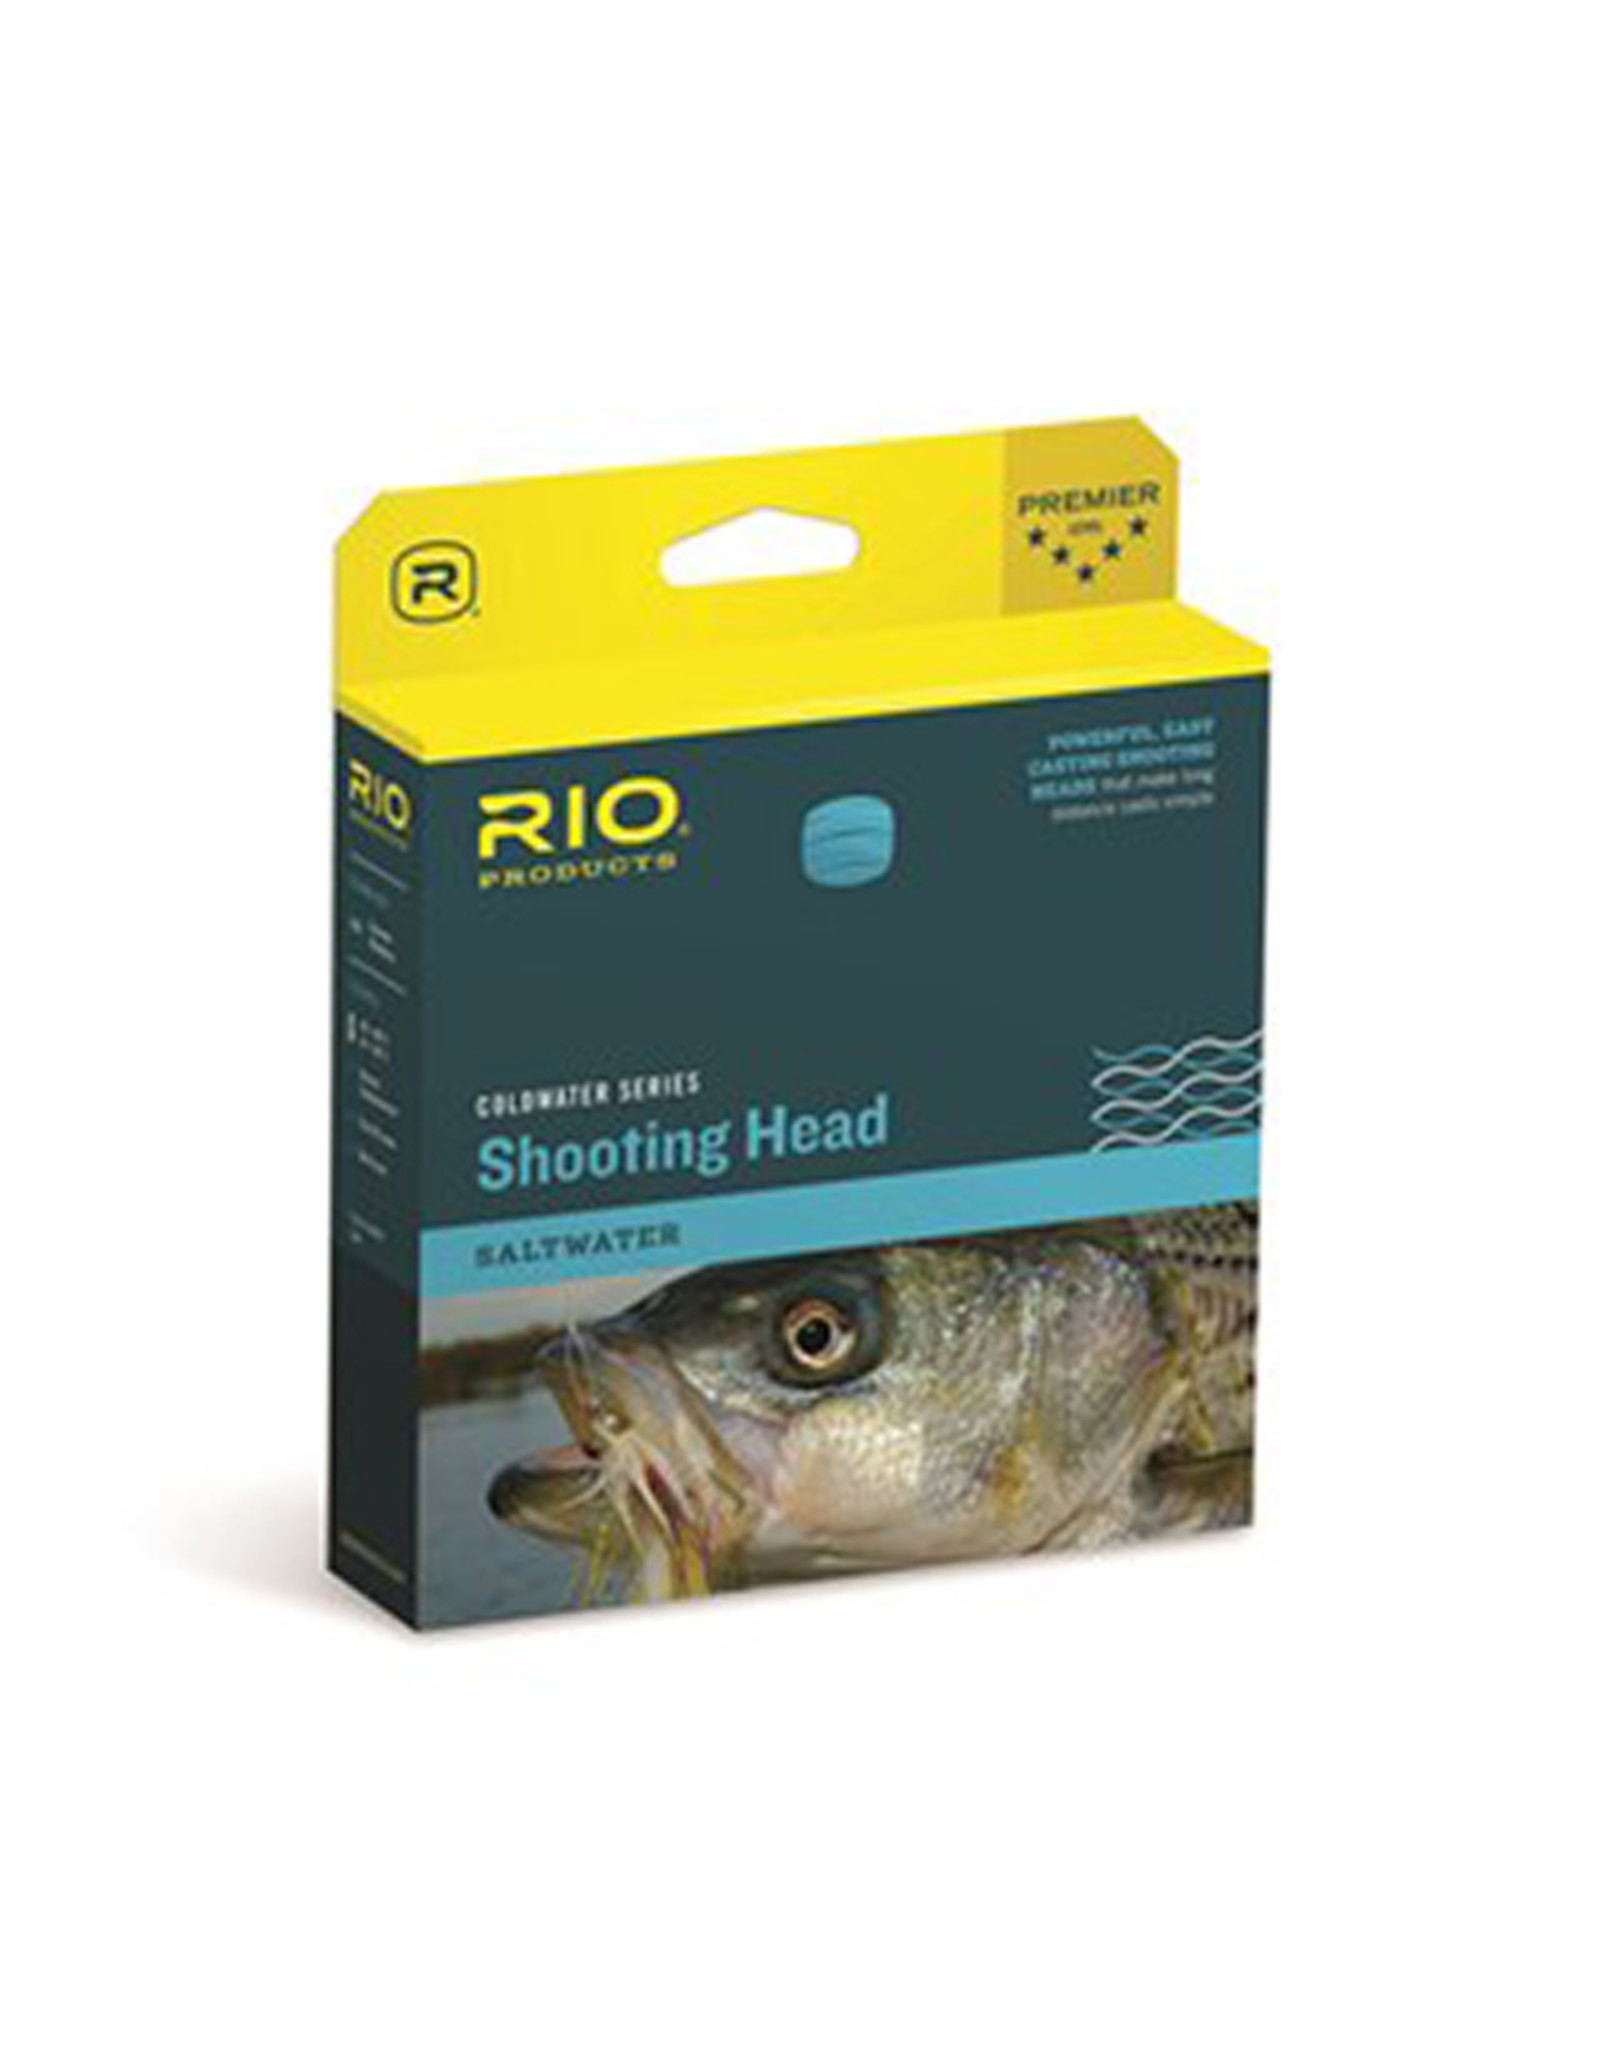 RIO Products OutBound Short Shooting Head S3